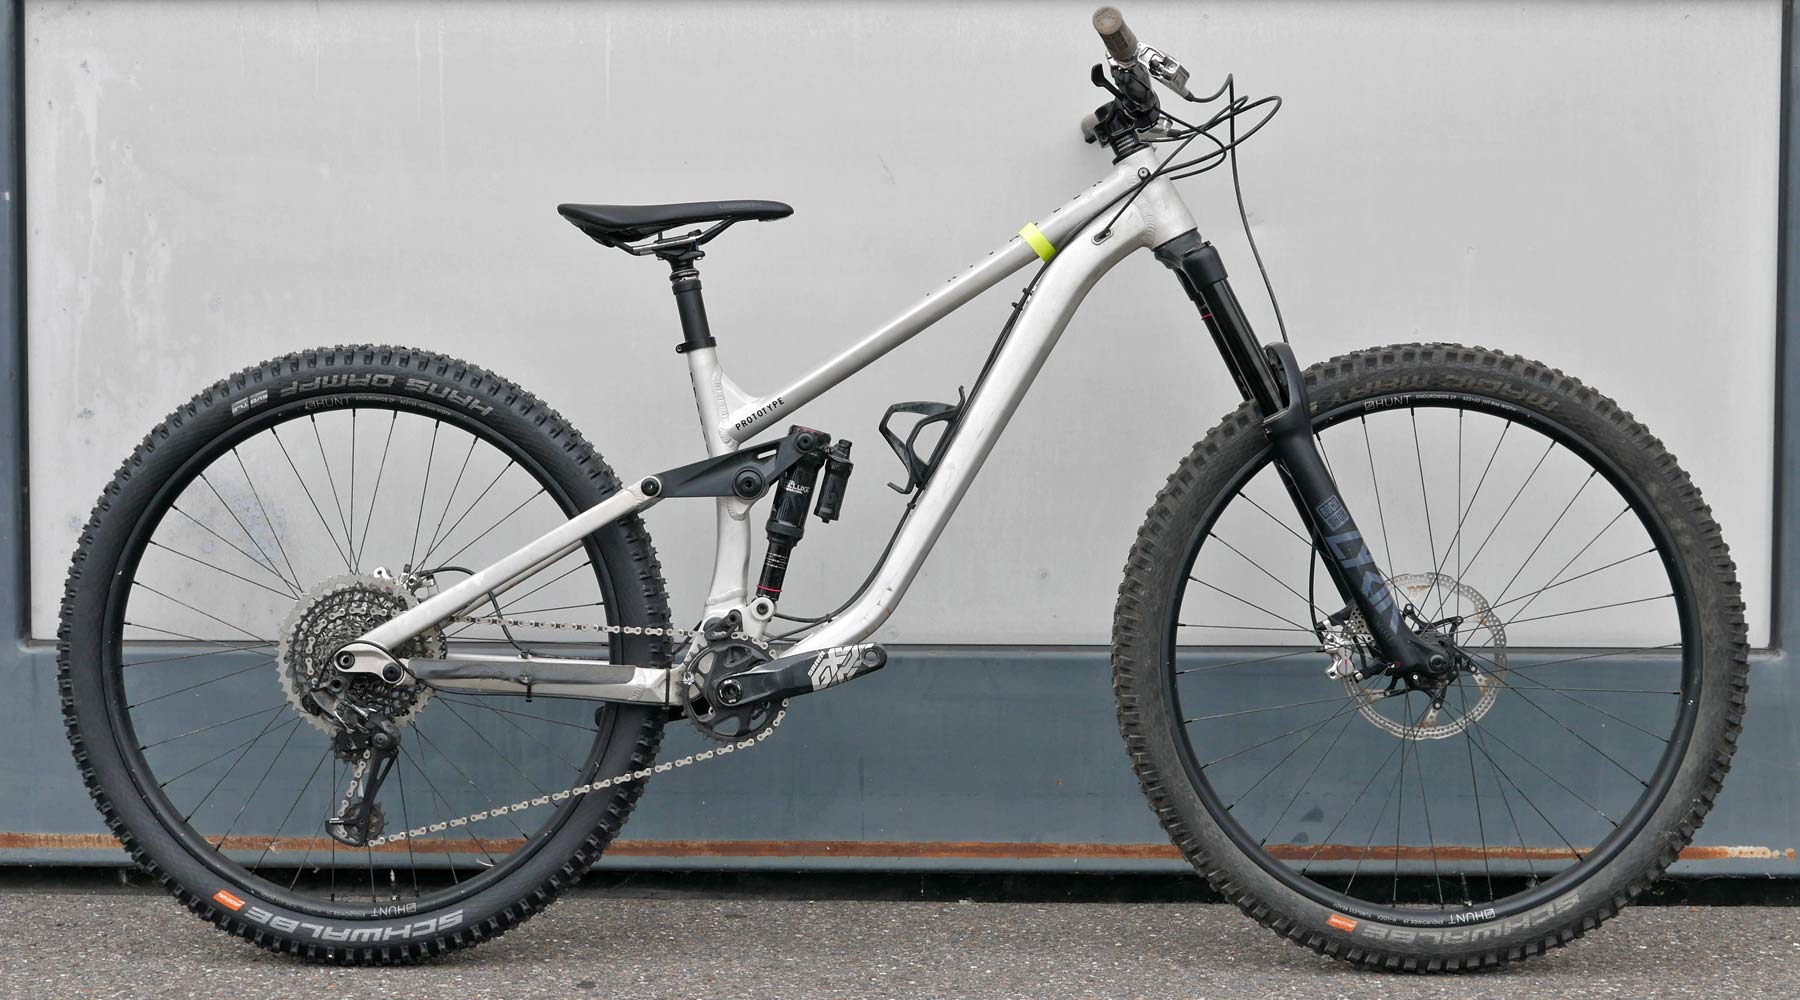 Privateer 161 mountain bike, 161mm travel aluminum aluminium alloy enduro EWS trail MTB prototype